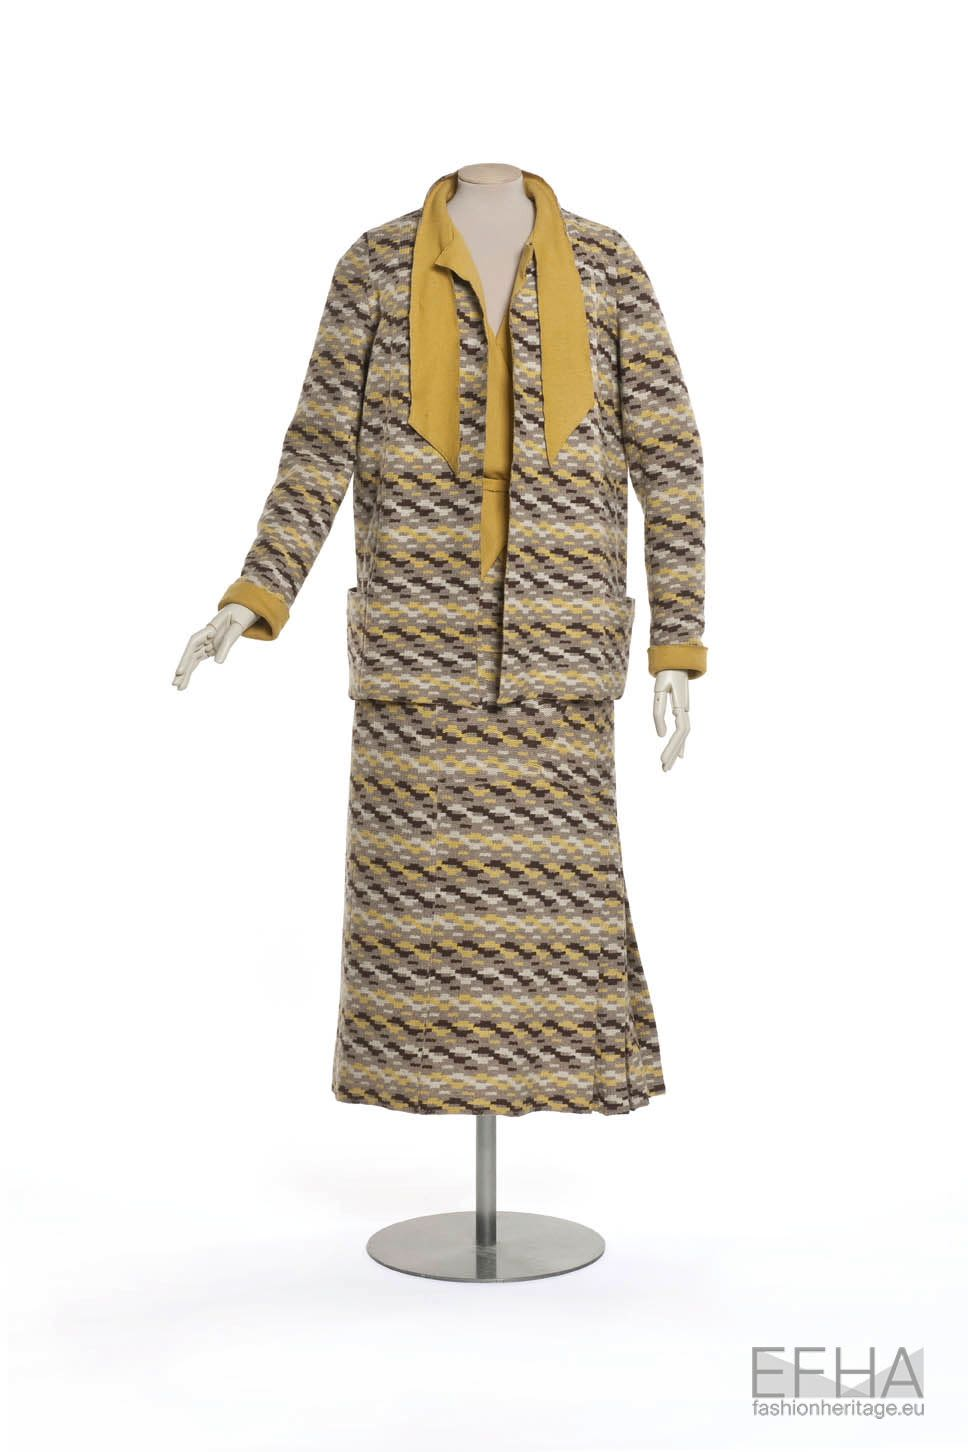 Tailored two-piece suit with skirt in cream, brown and yellow colours, displayed on a mannequin